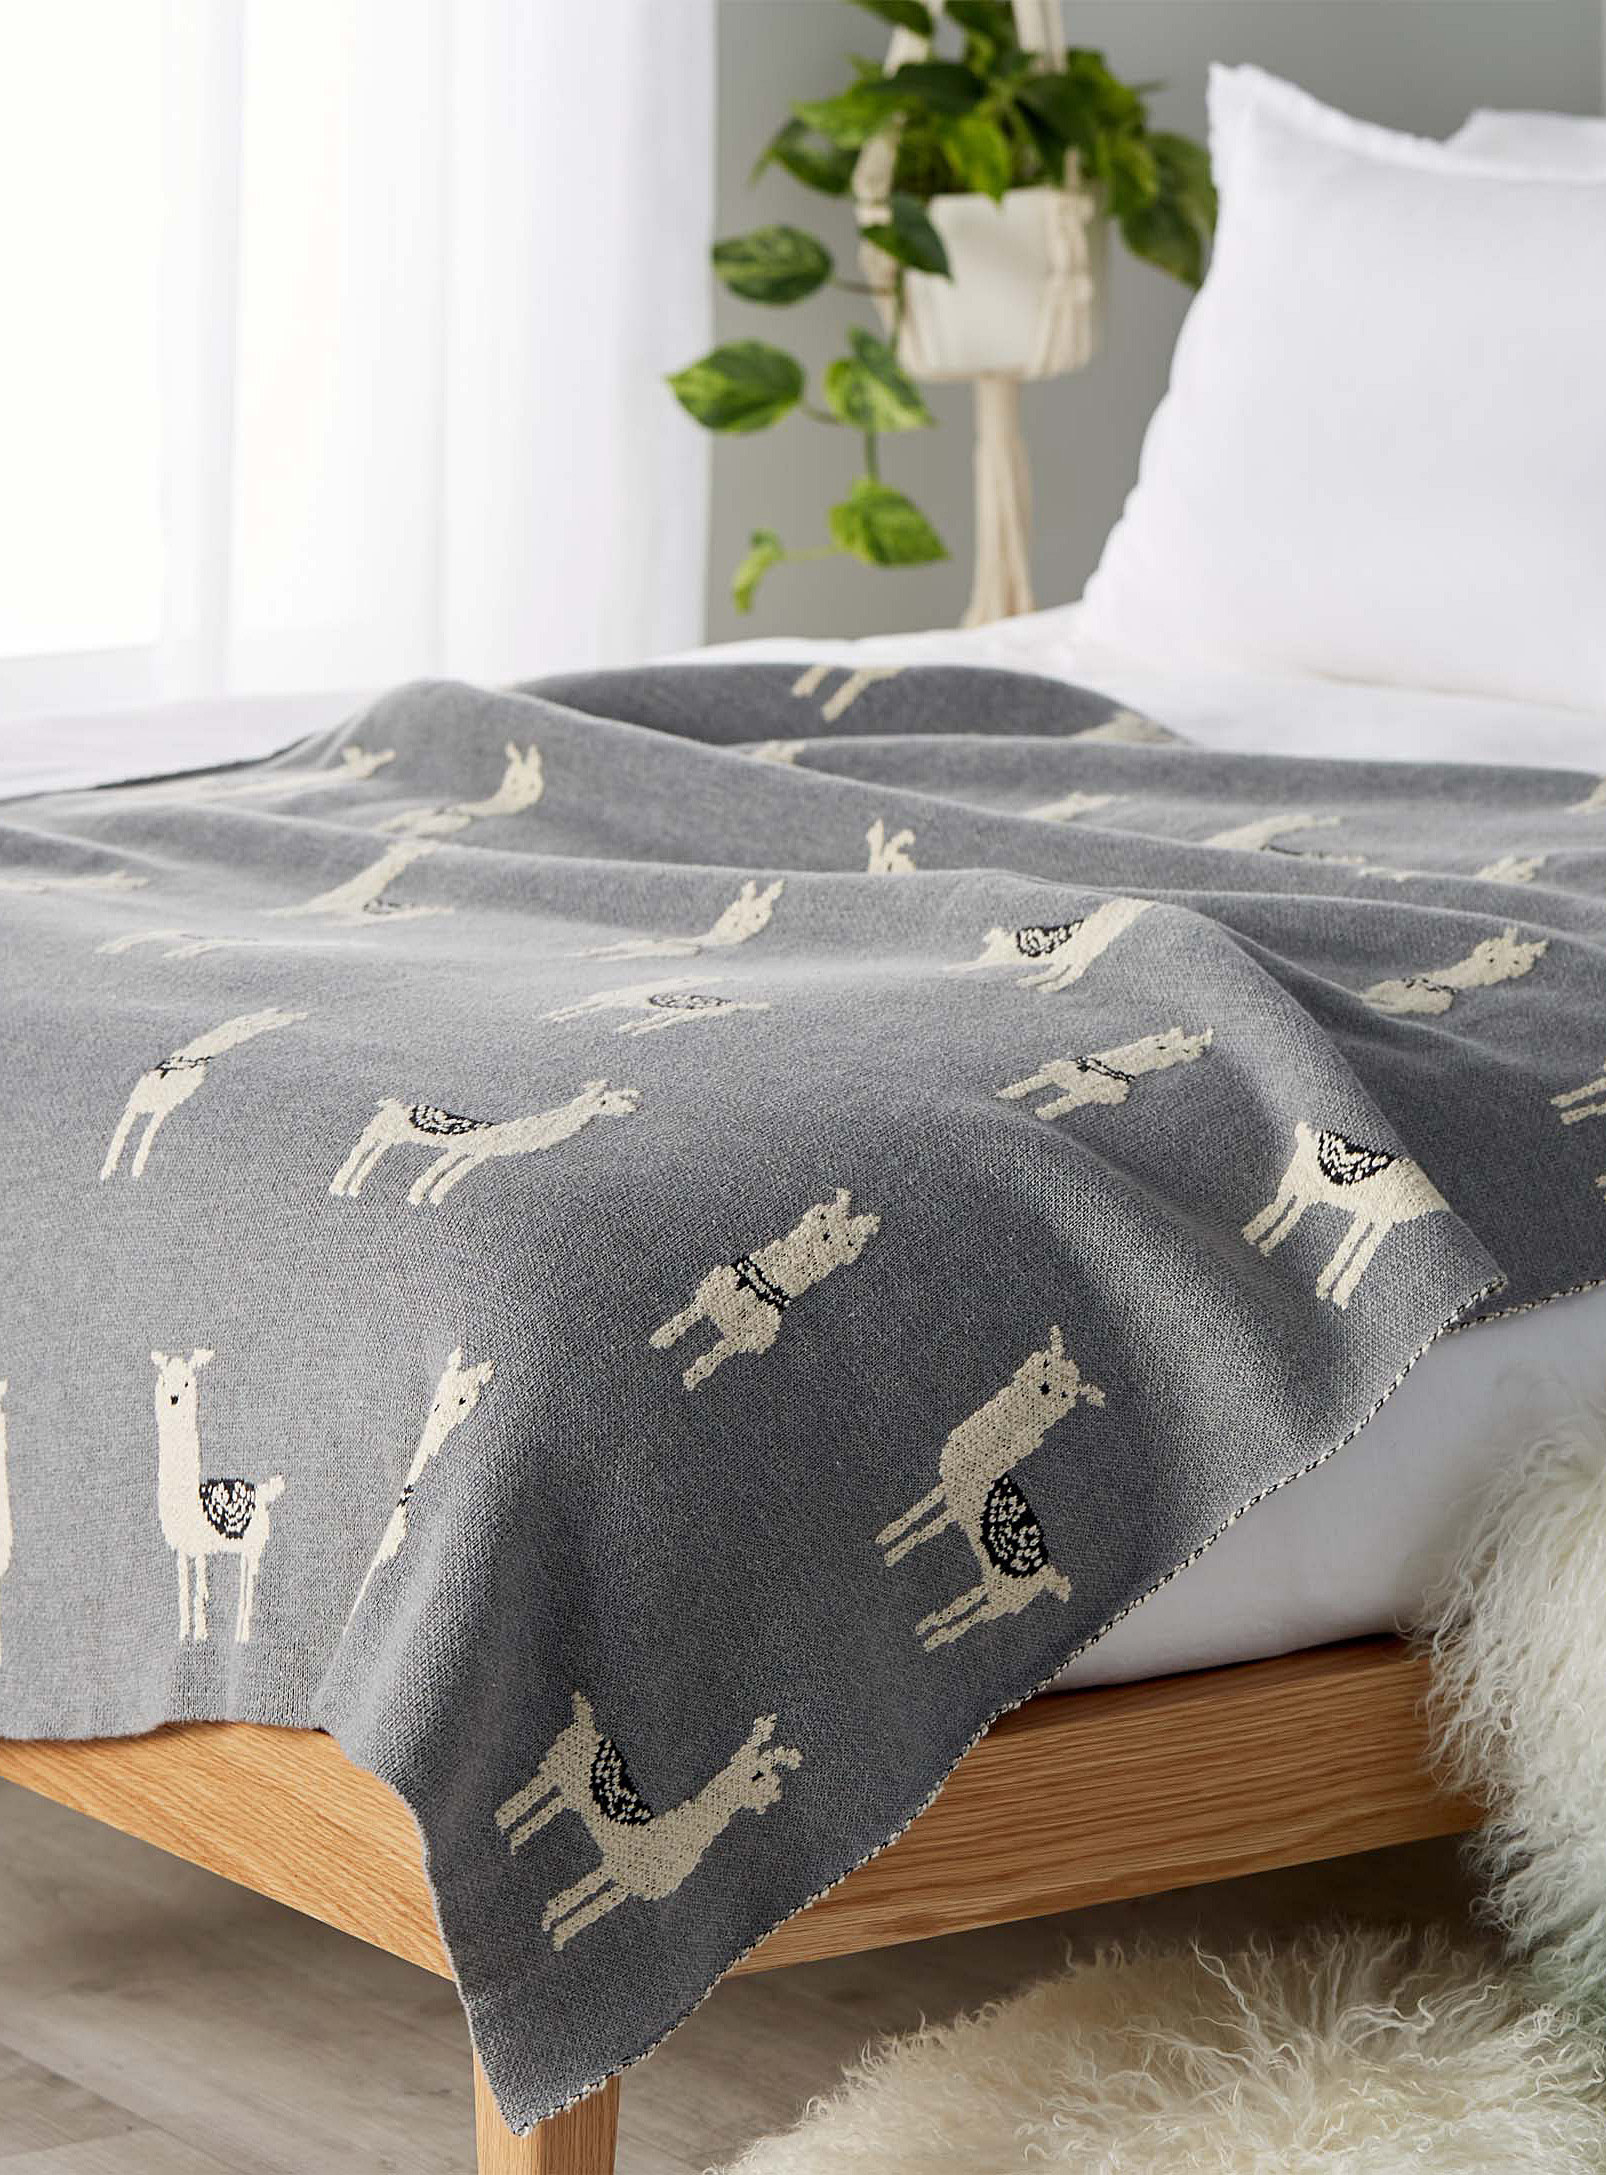 A throw with llamas on it is spread over a bed